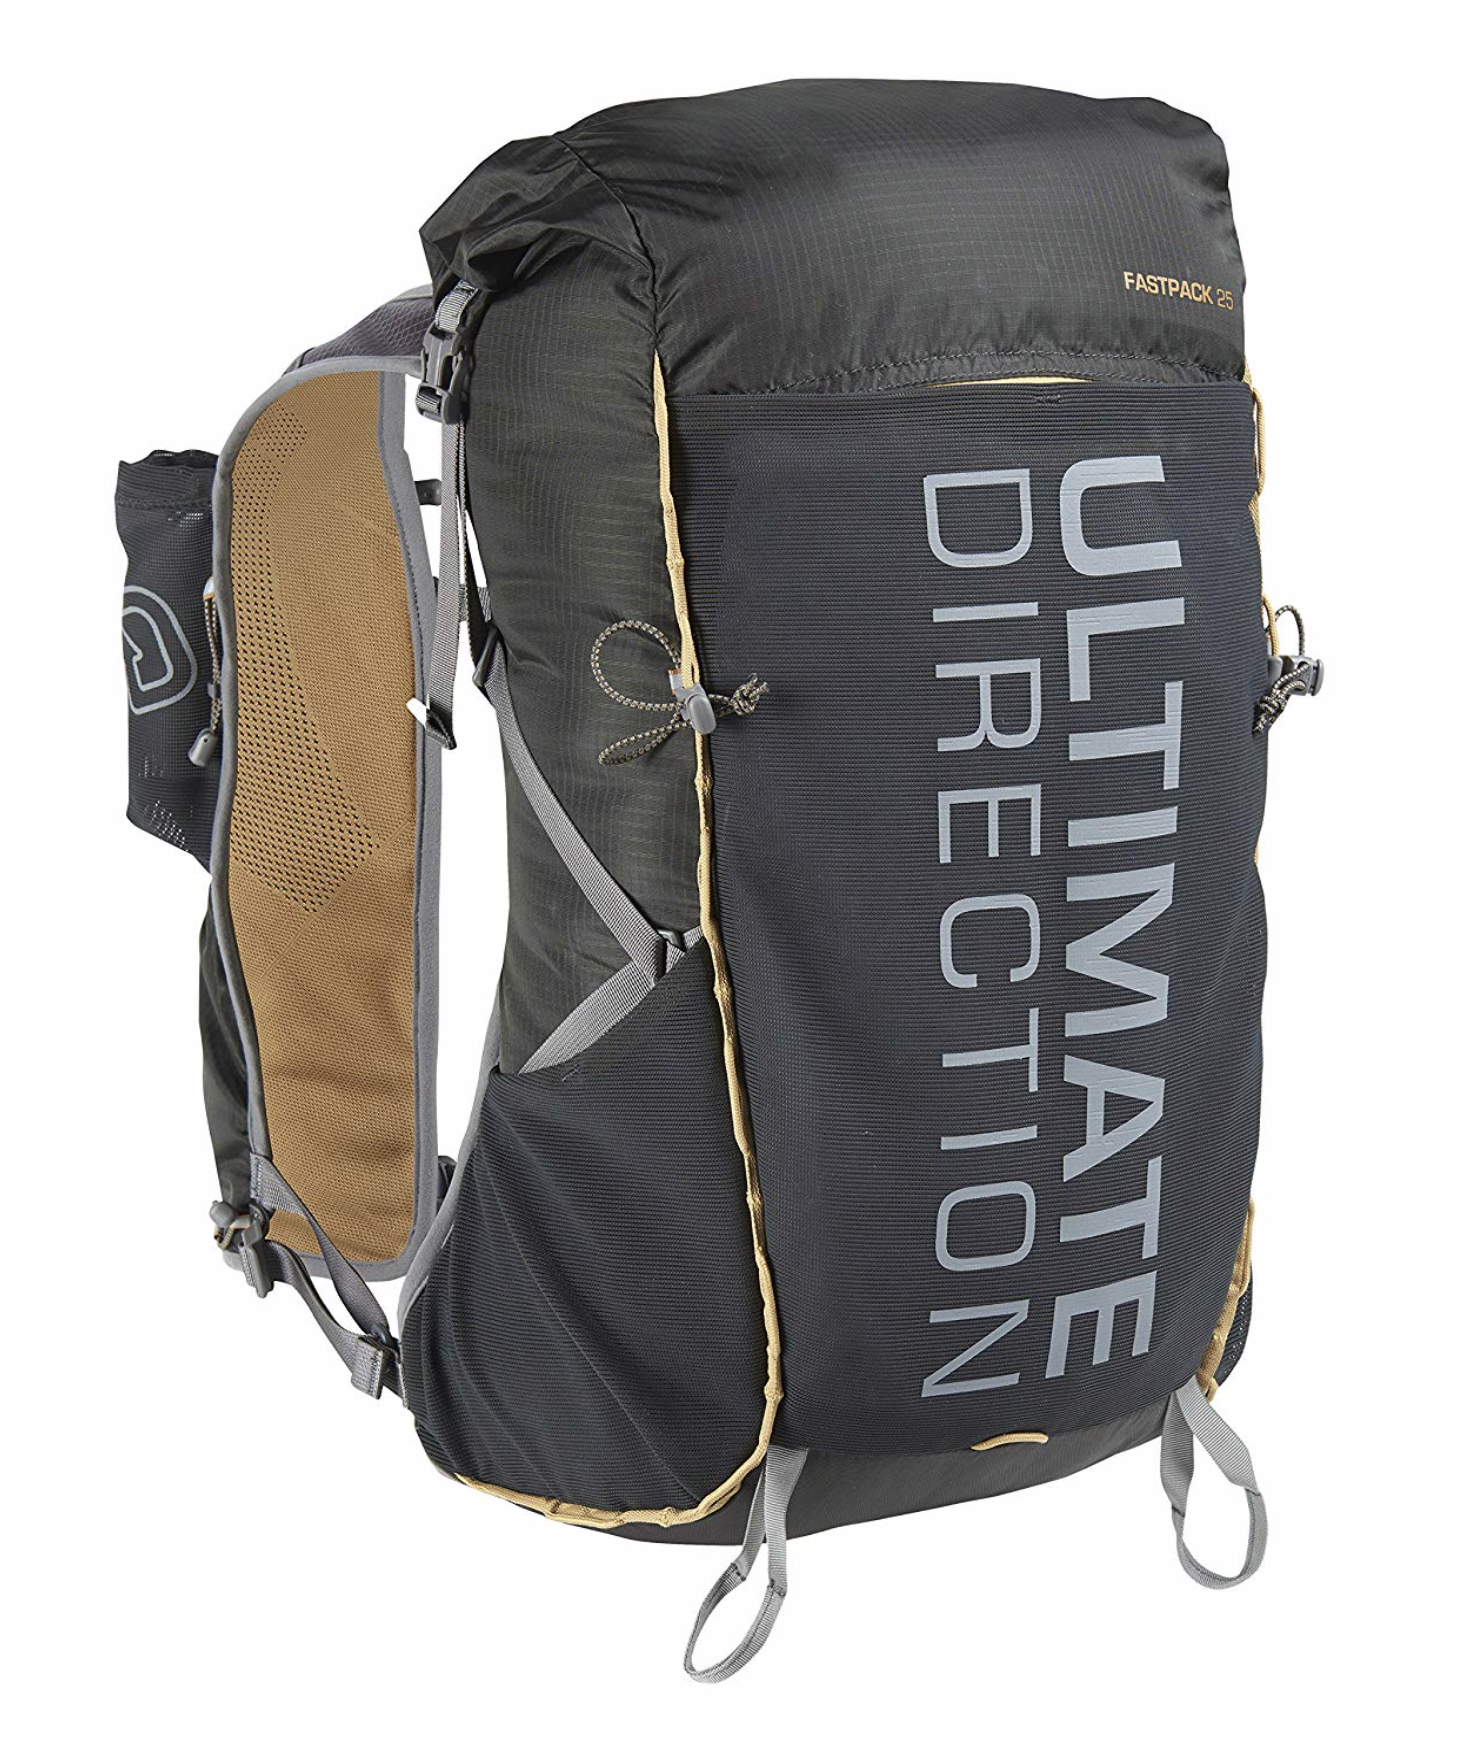 Ultimate Direction Fastpack 25  - Designed for everything from peak bagging to endurance running, the Ultimate Direction Fastpack 20 Backpack gives you what you need to get it done without weighing you down with extra doodads. Holds 15-23 liters.  Check out our Gear Review . For more storage, check out the Fastpack 35 (20-30 liters),  click here .